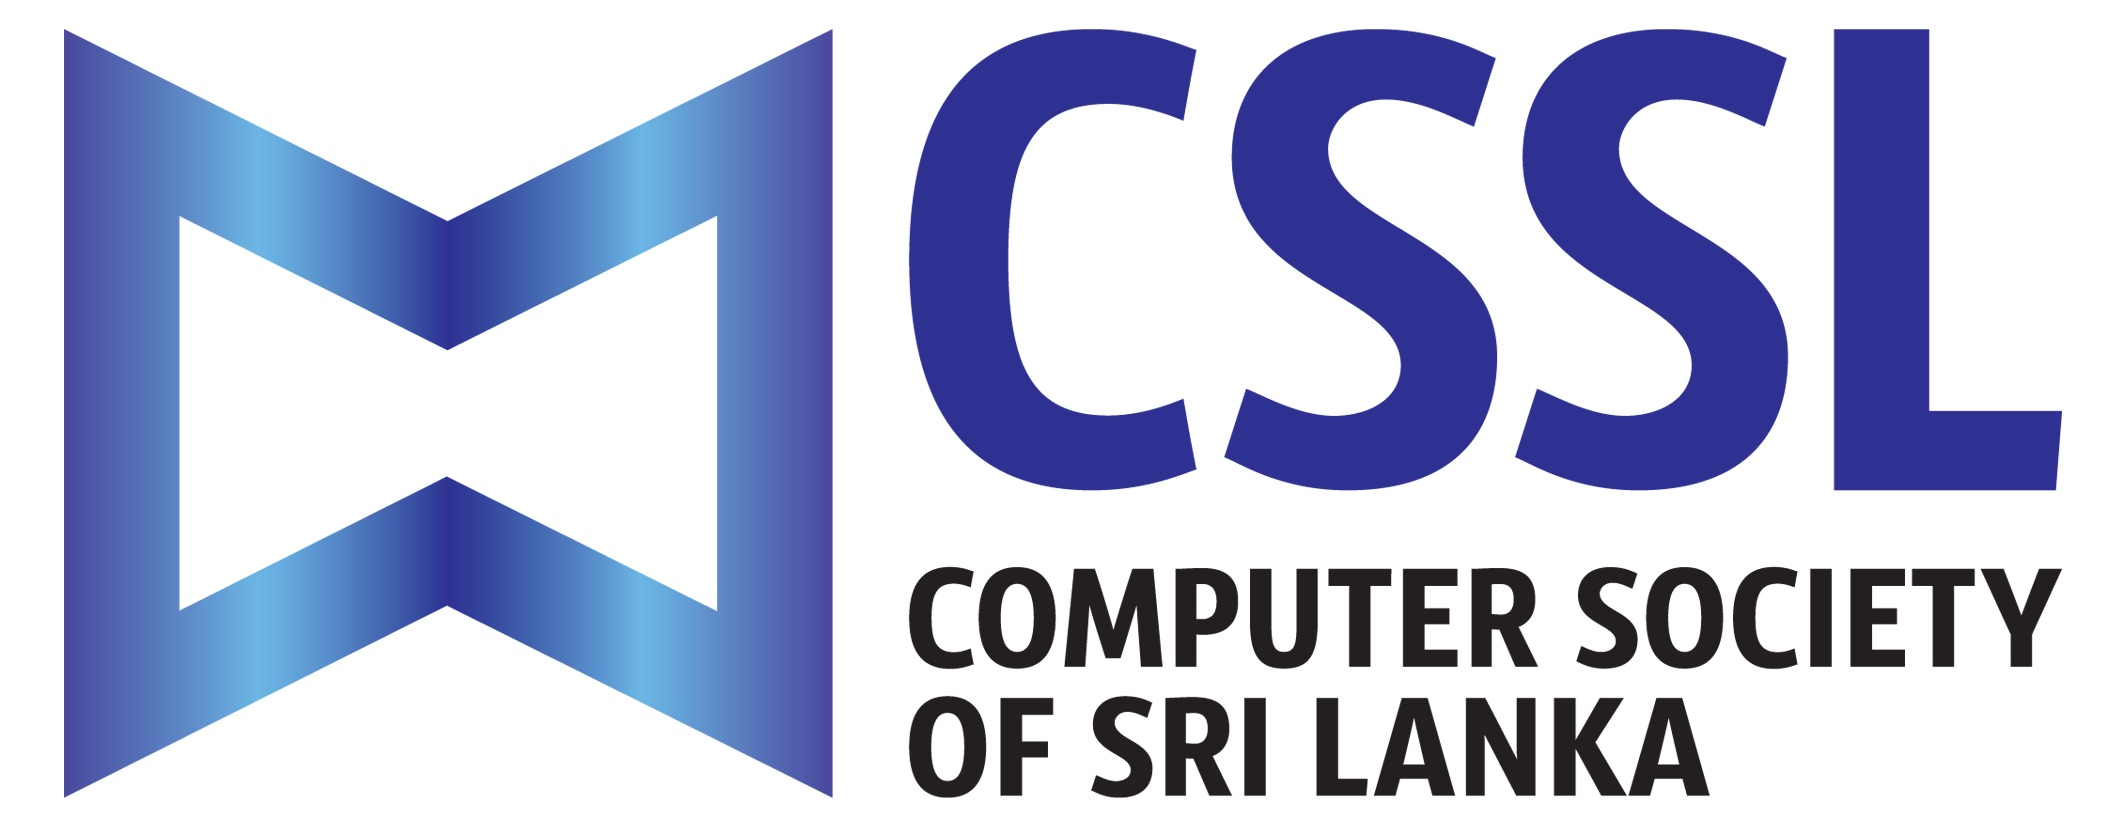 Computer Society of Sri Lanka